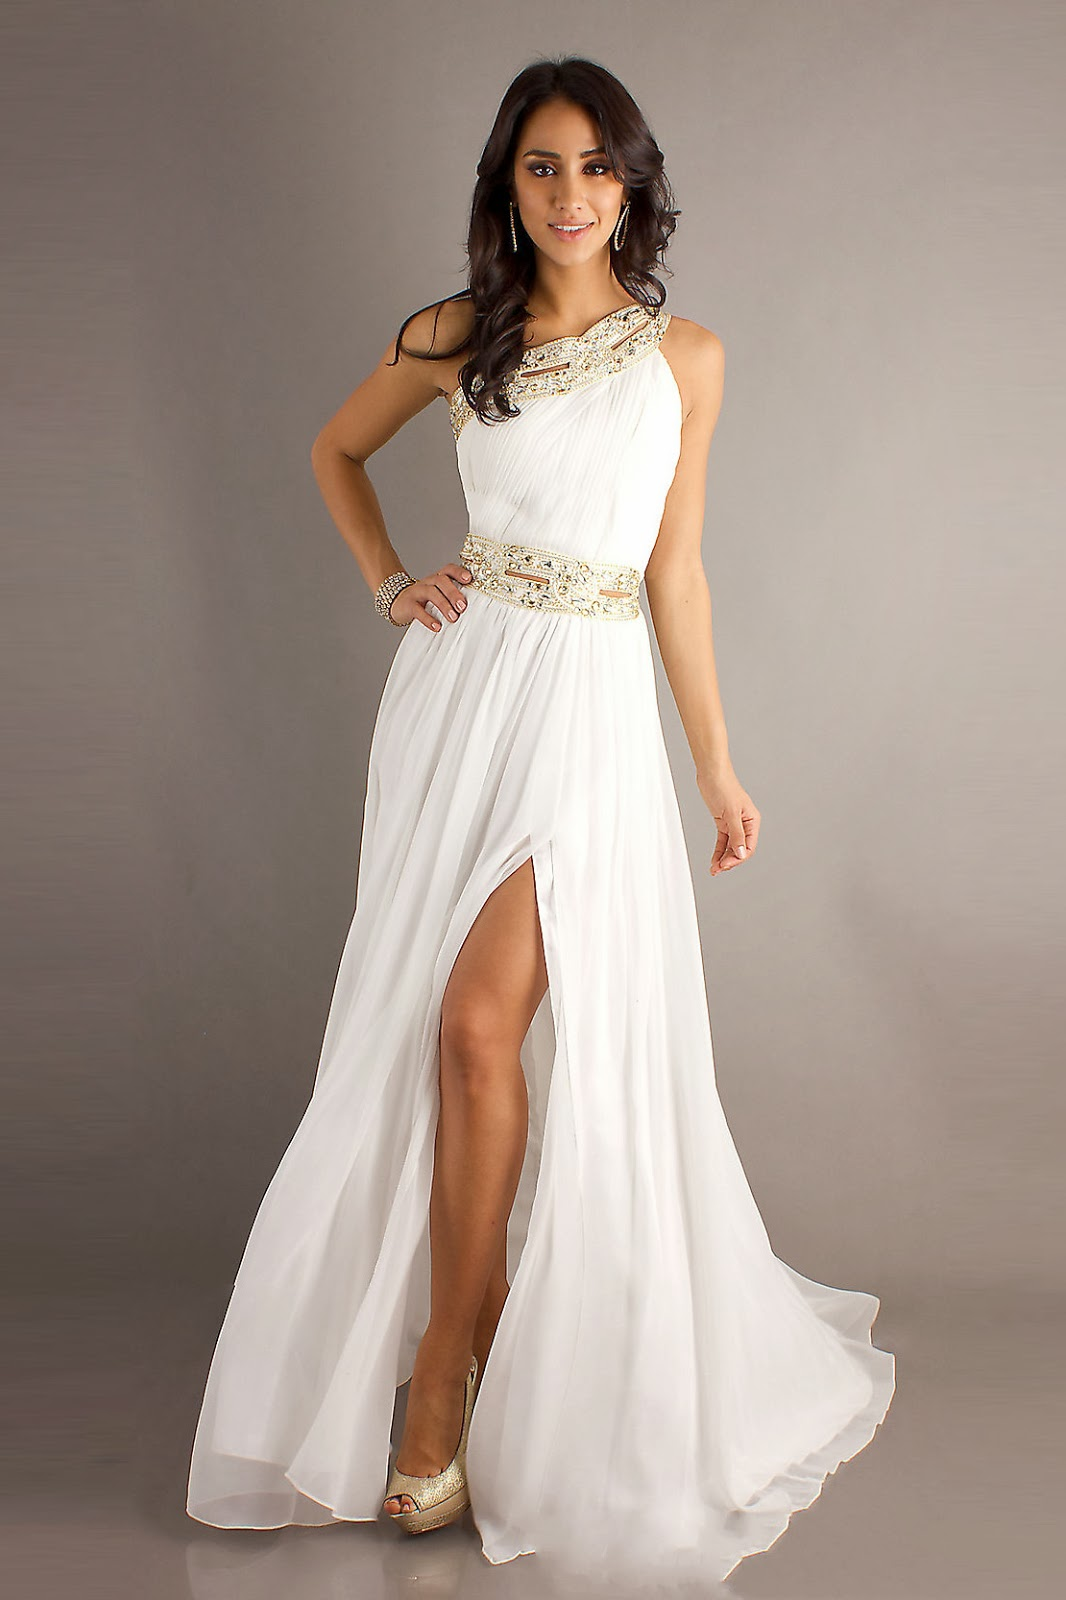 White Dress Pictures: Beautiful White Prom Dresses